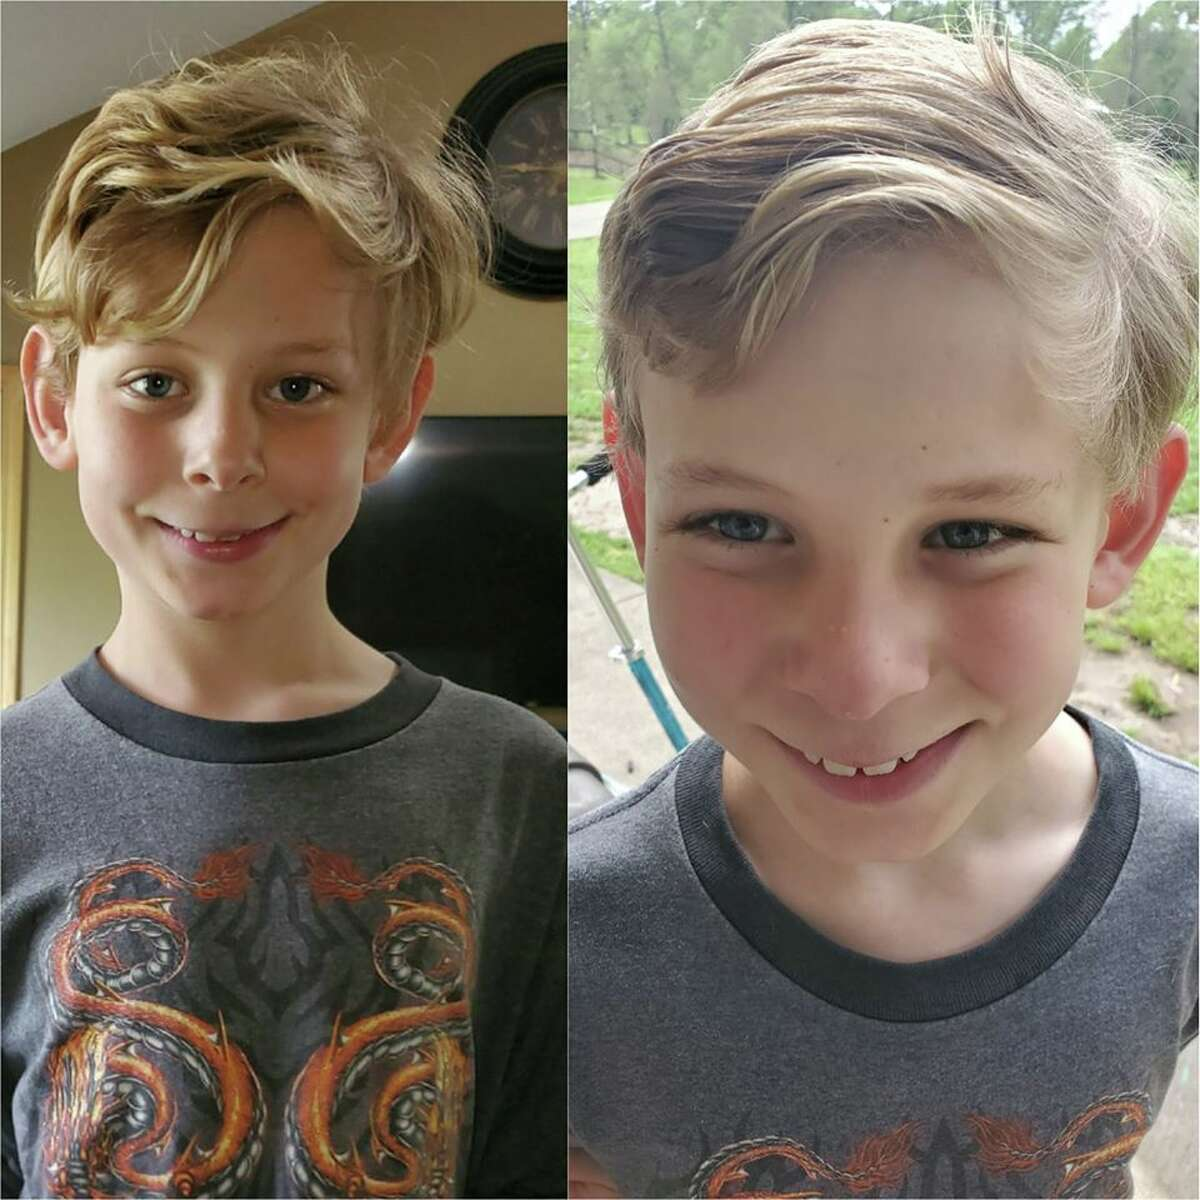 As Houstonians continue sheltering in place, many have turned to coronacuts as an option for their growing hair issues. Here is a before and after shot of Grace Sommerville's first time ever cutting her son's hair.